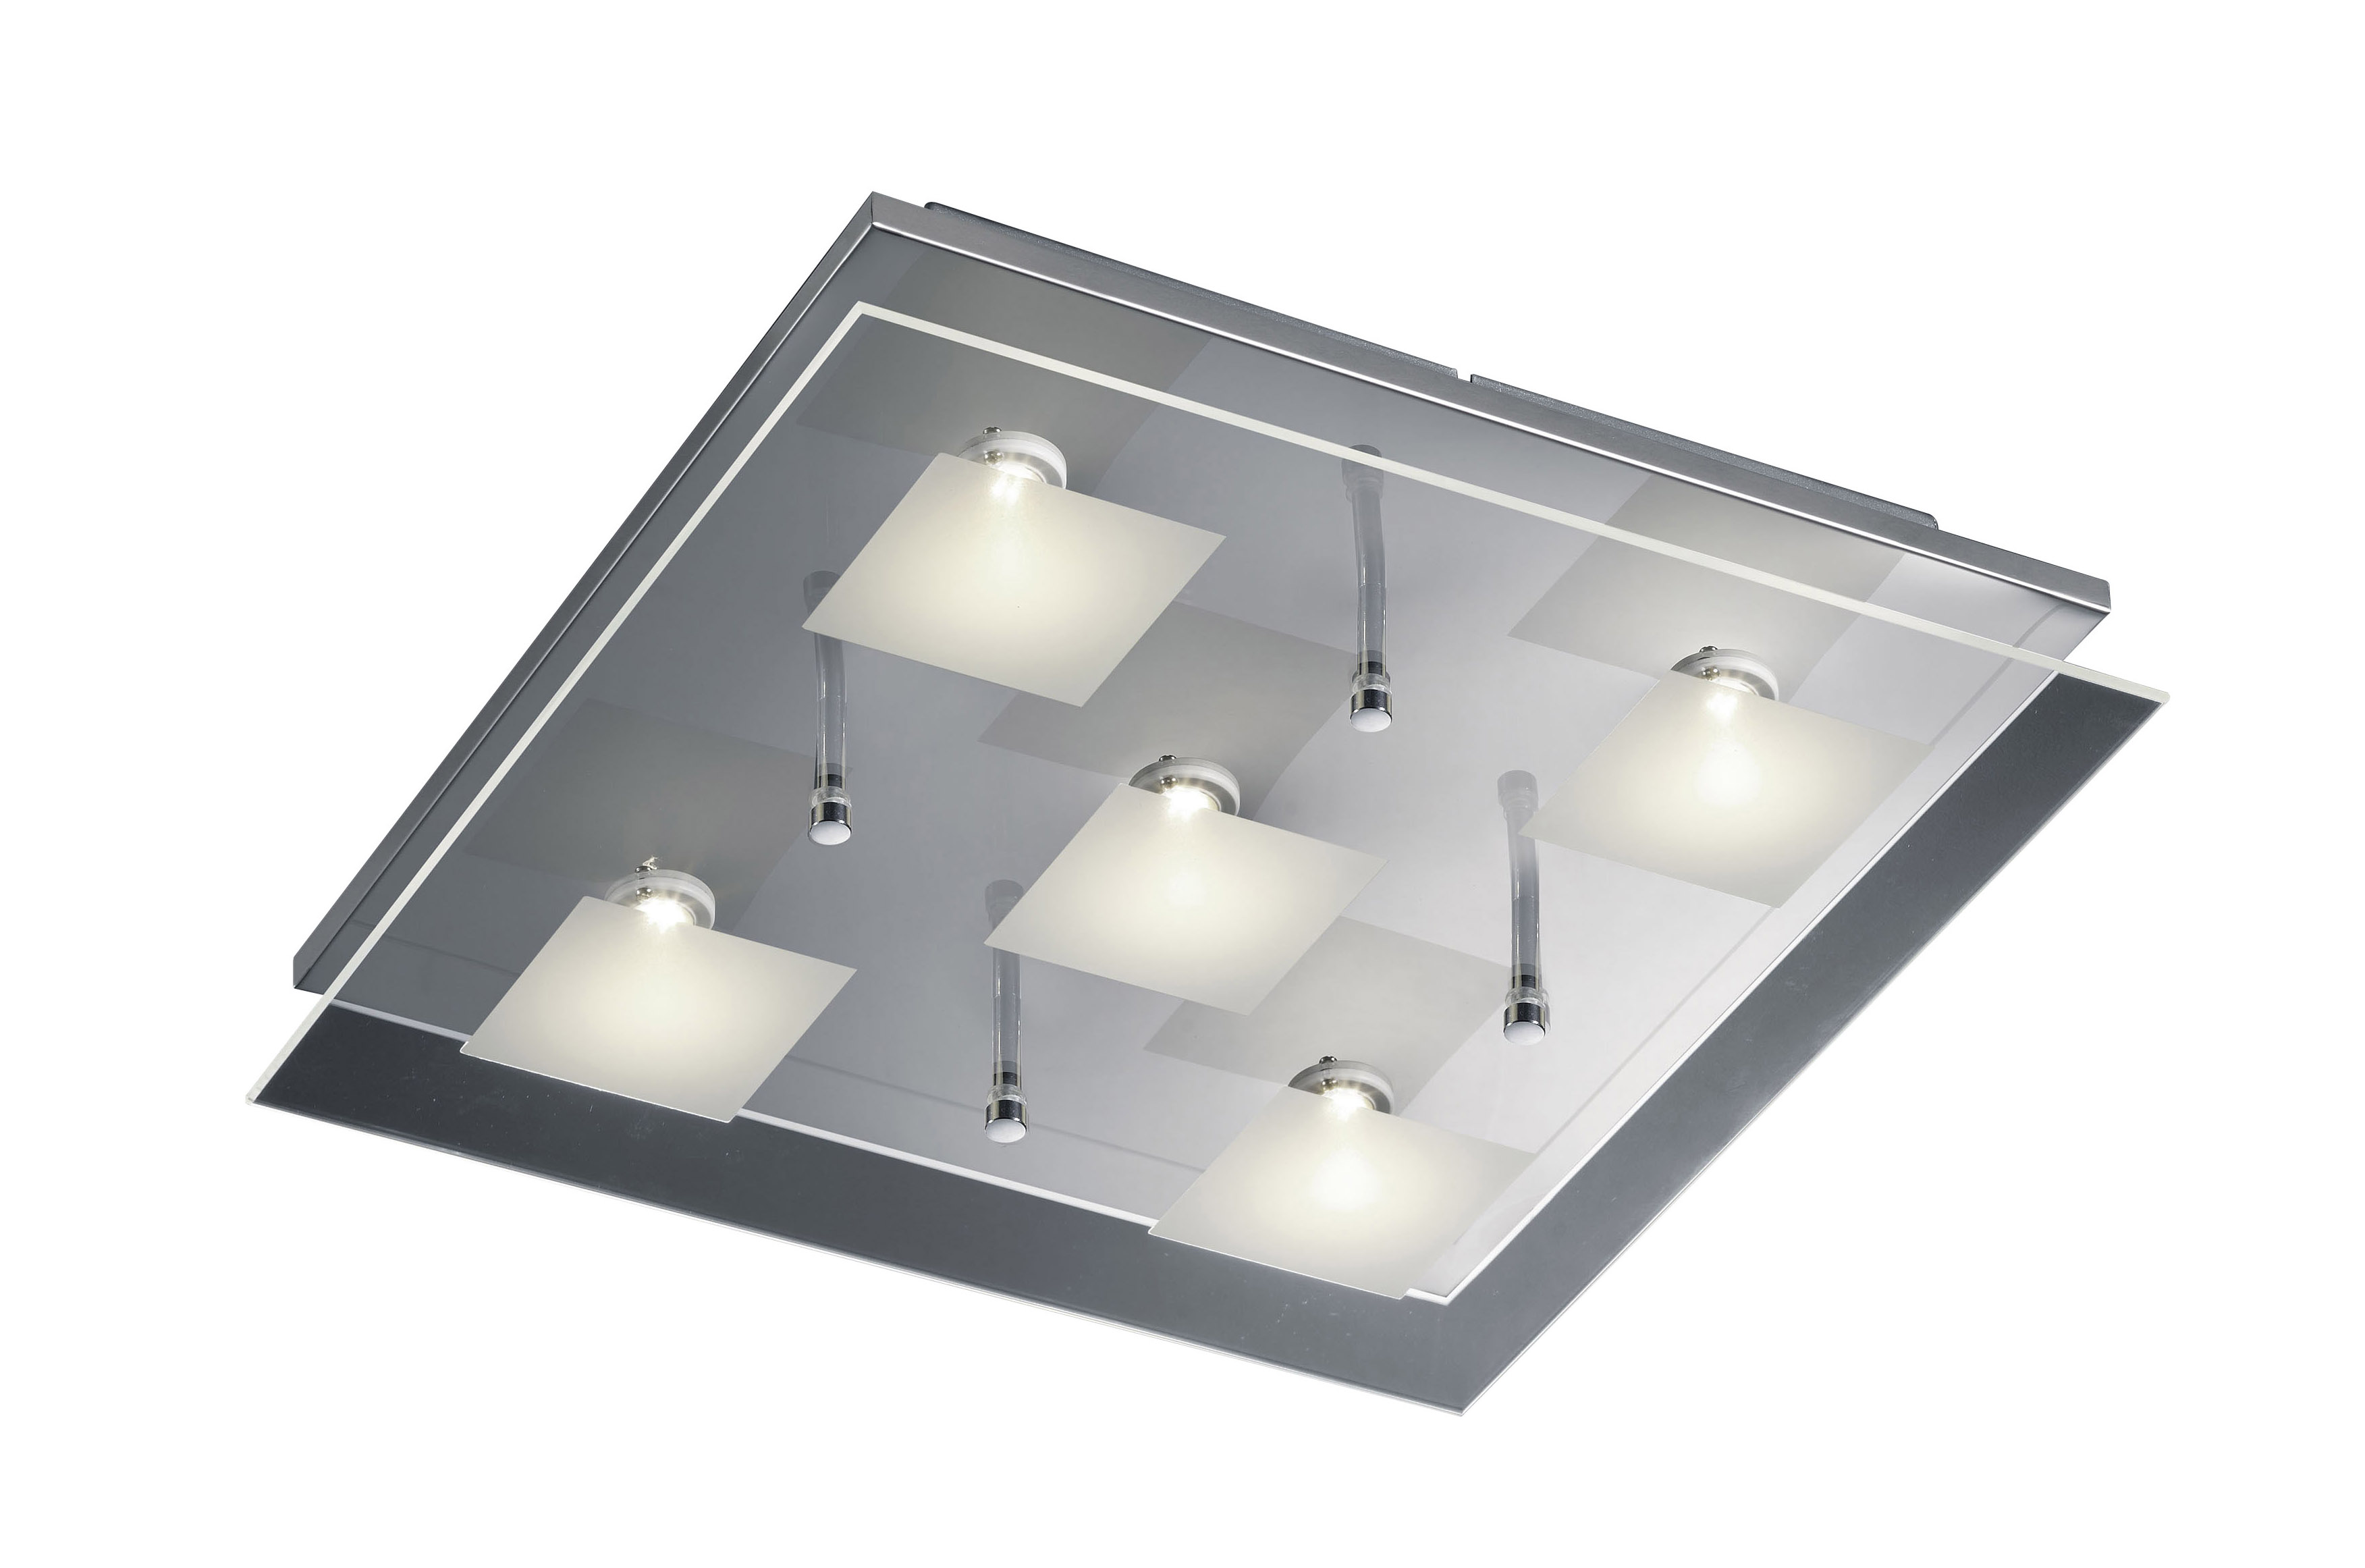 Square led glass ceiling light leyton lighting square led glass ceiling light aloadofball